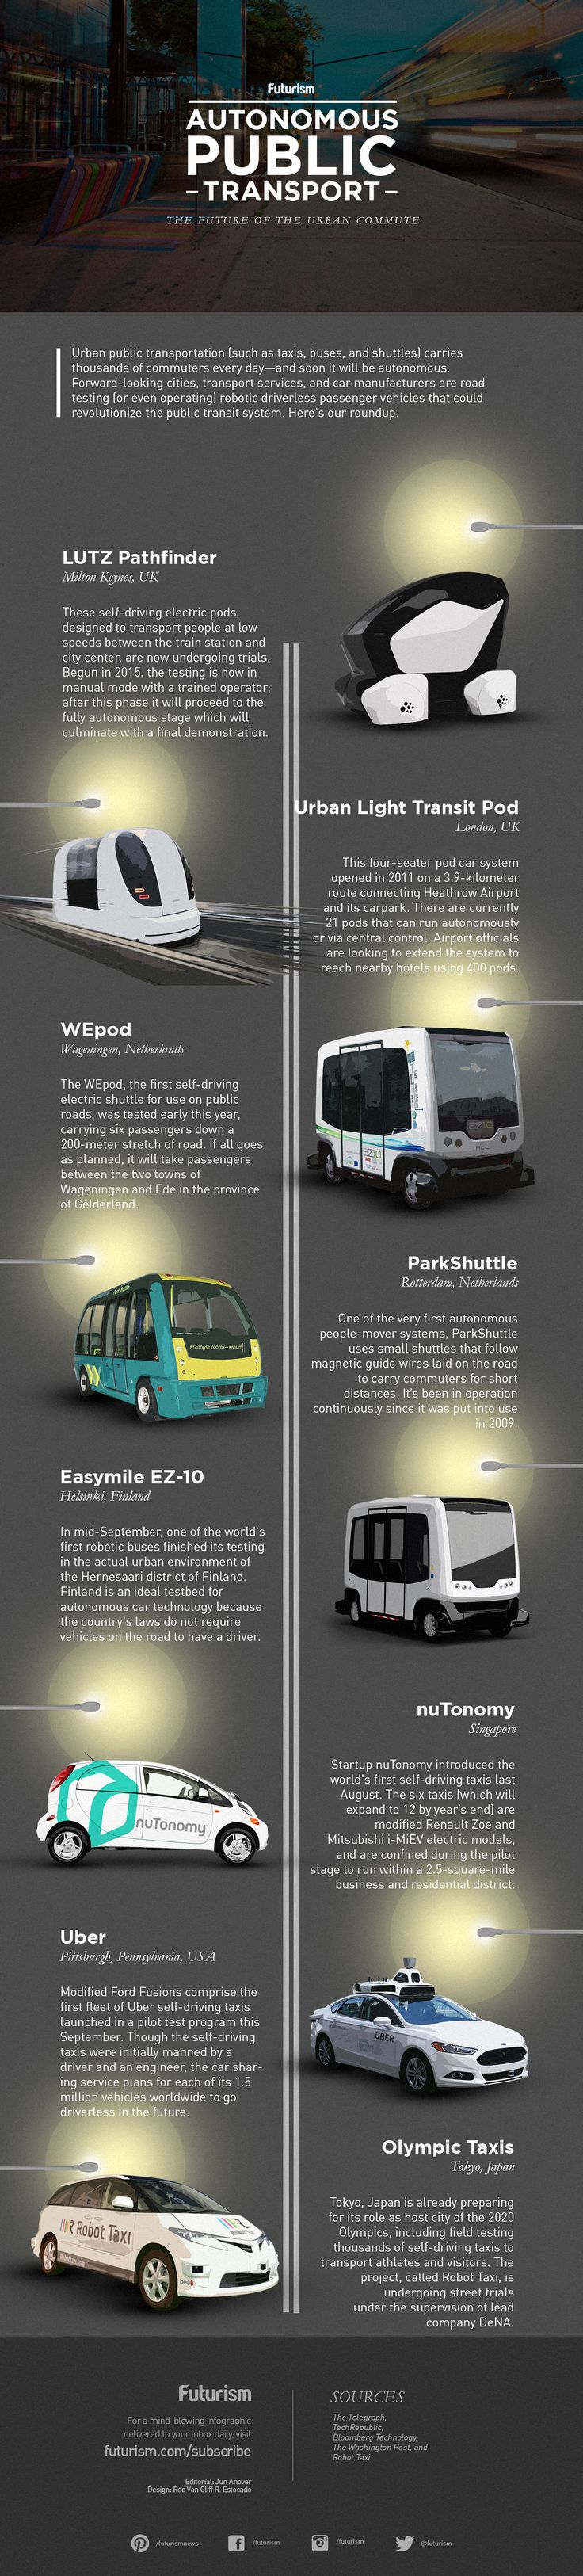 8 best connected cars iot images on pinterest automobile autonomous public transport the future of the urban commute infographic gamestrikefo Image collections